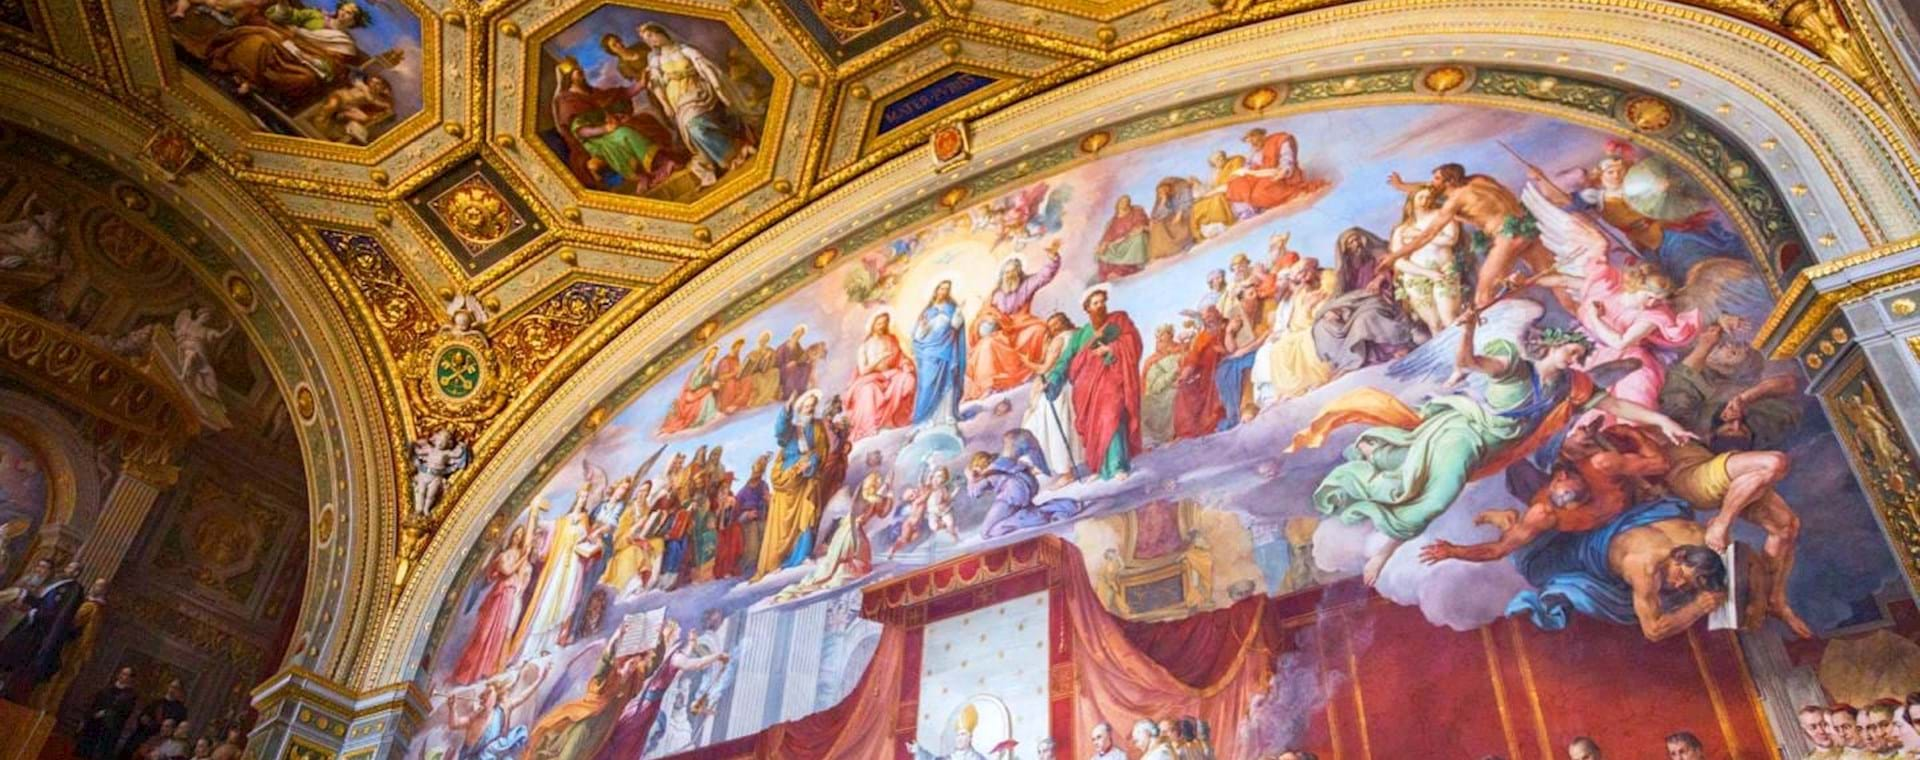 Faster Than Skip-the-Line Tickets: Sistine Chapel & Vatican Museums